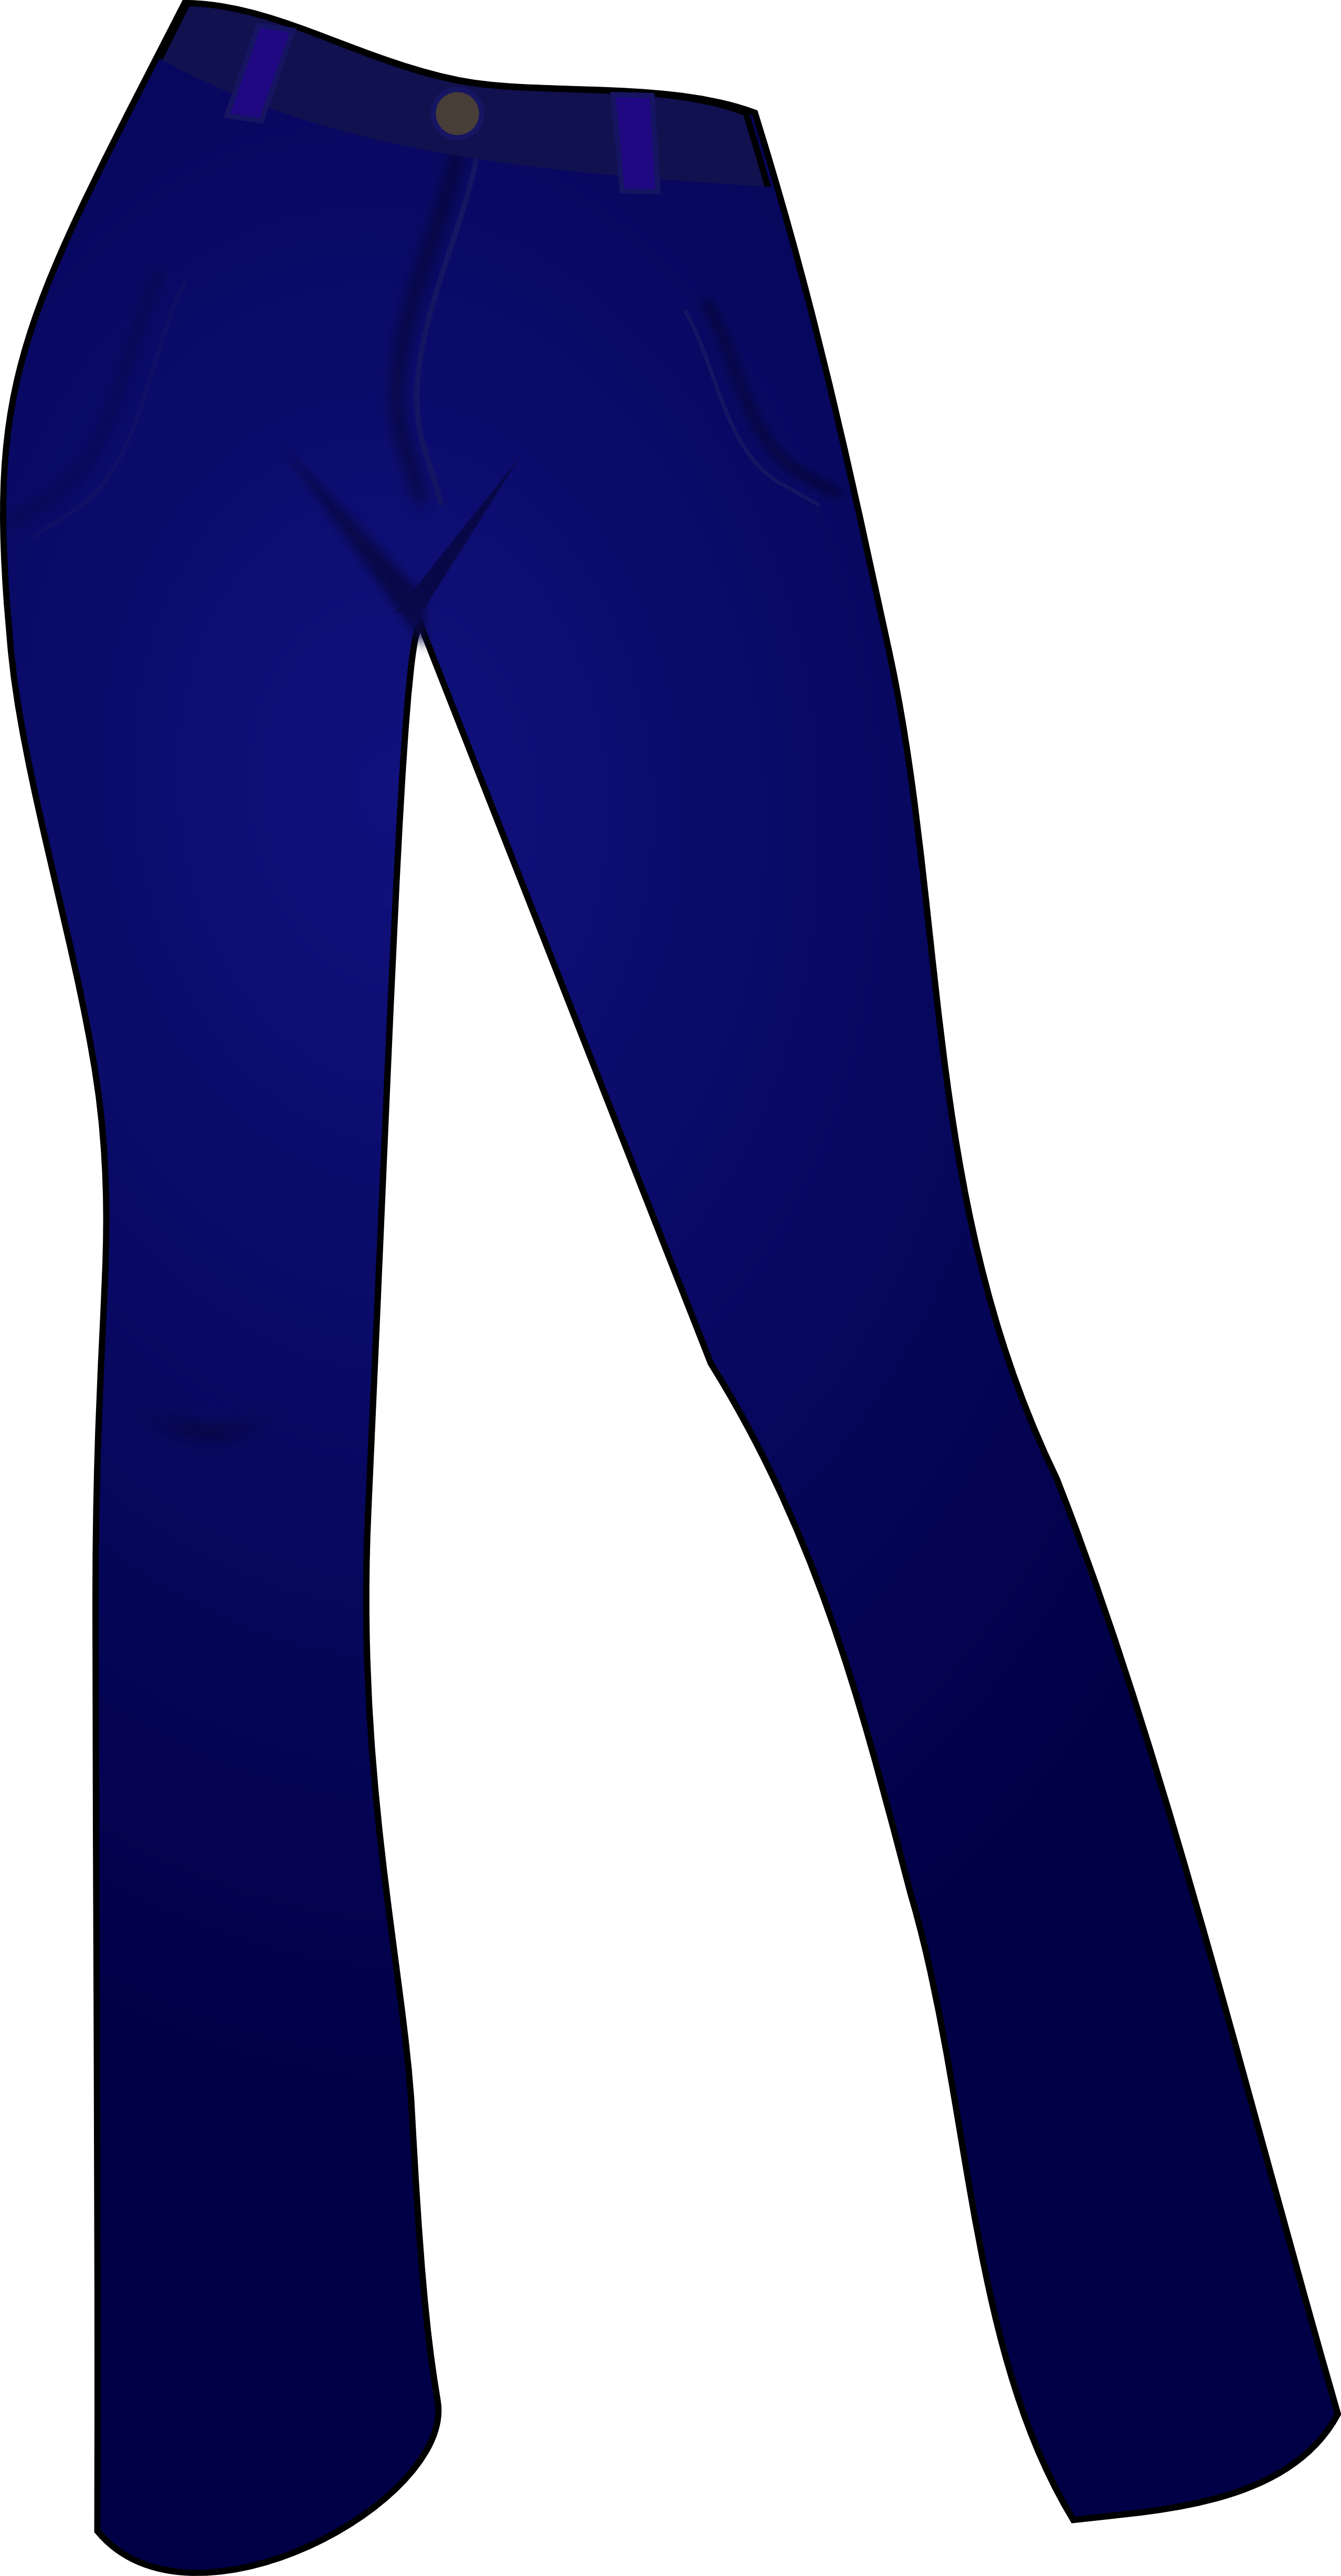 clipart picture of jeans - photo #3